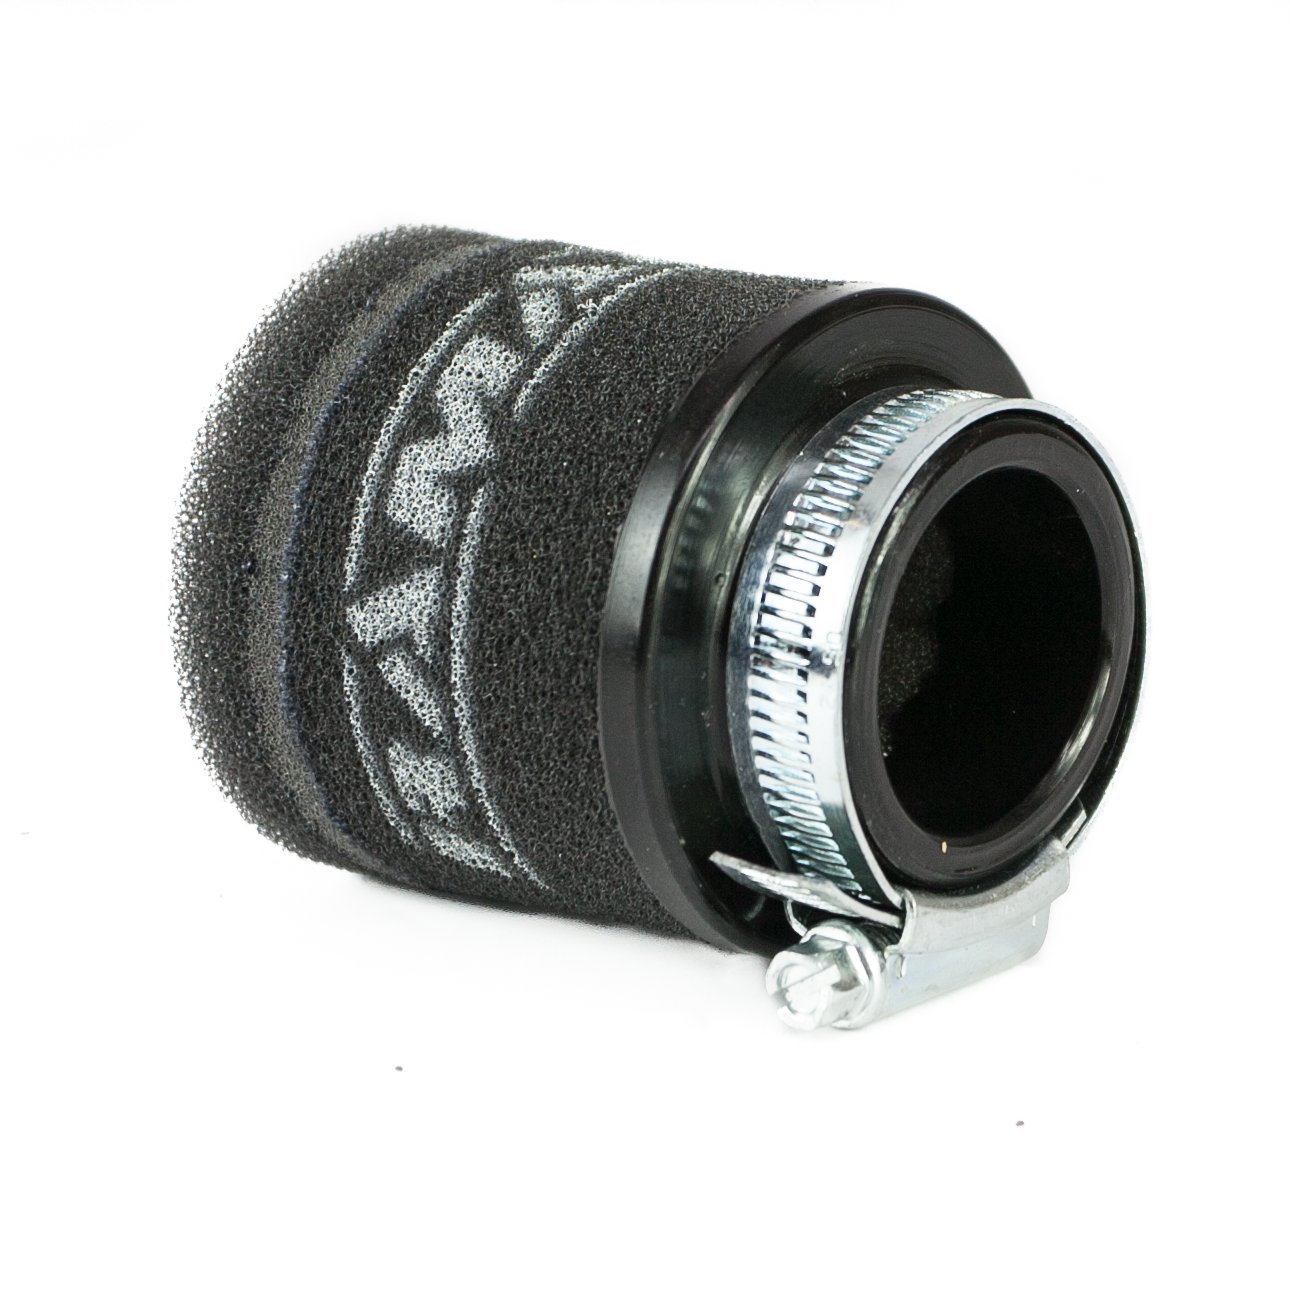 002 Support moto Filtre /à Air-Noir Ramair filtres MR 34 mm